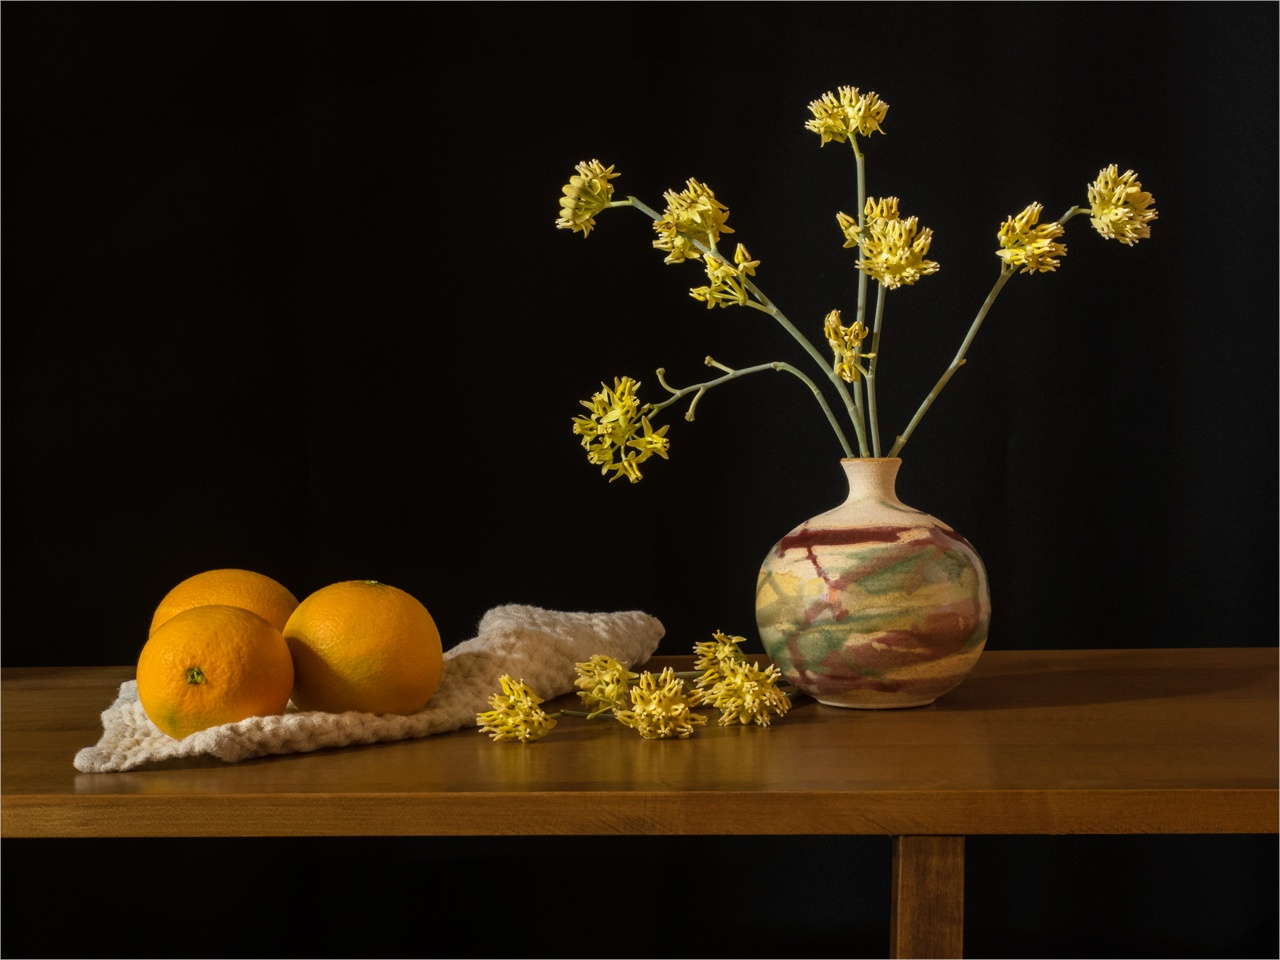 Oranges and Milkweed - Peggy Boike - SPCC